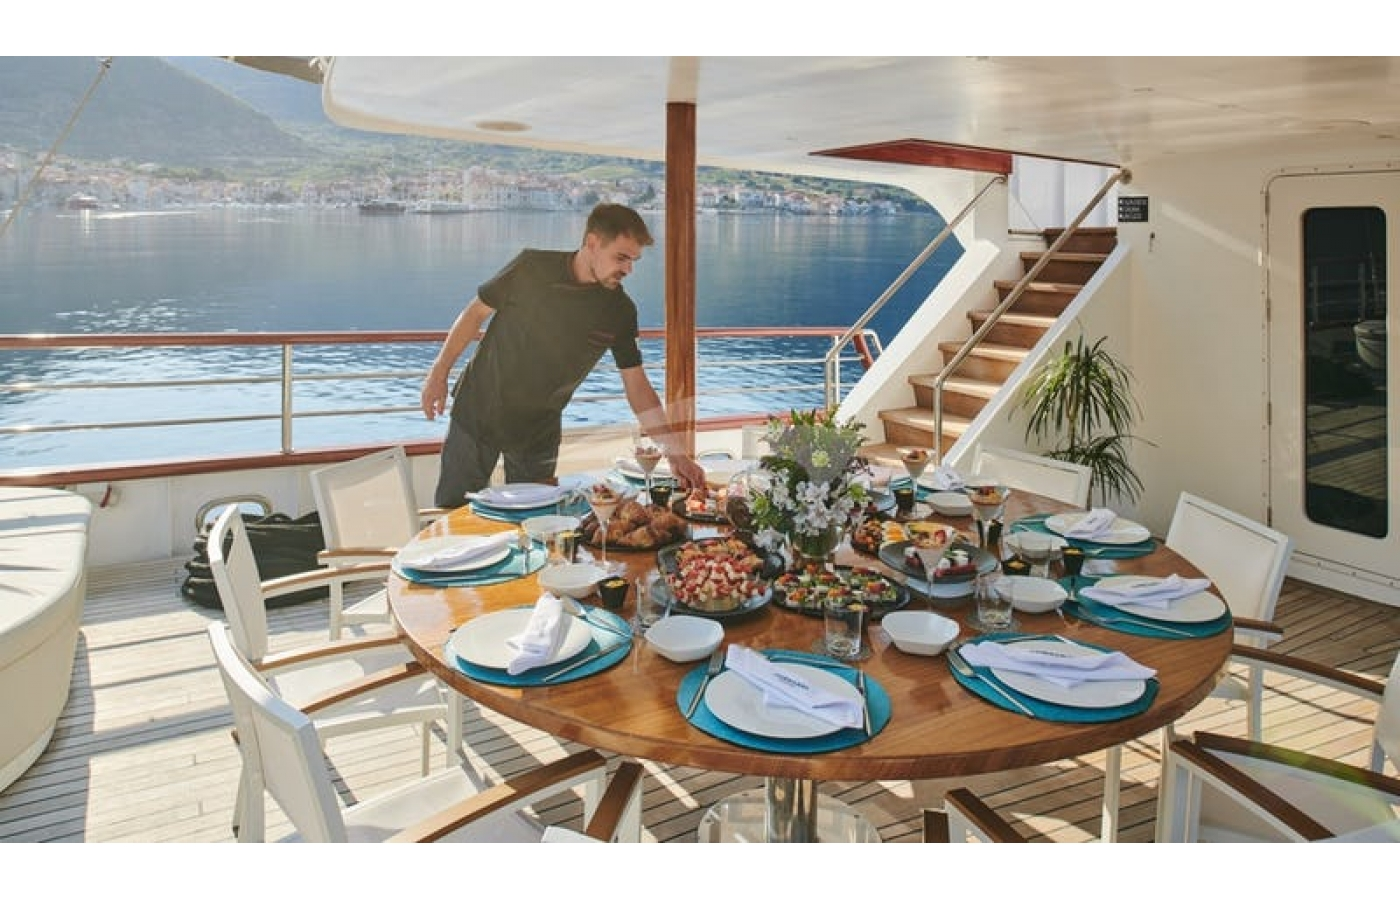 Large aft deck space for dining/relaxing